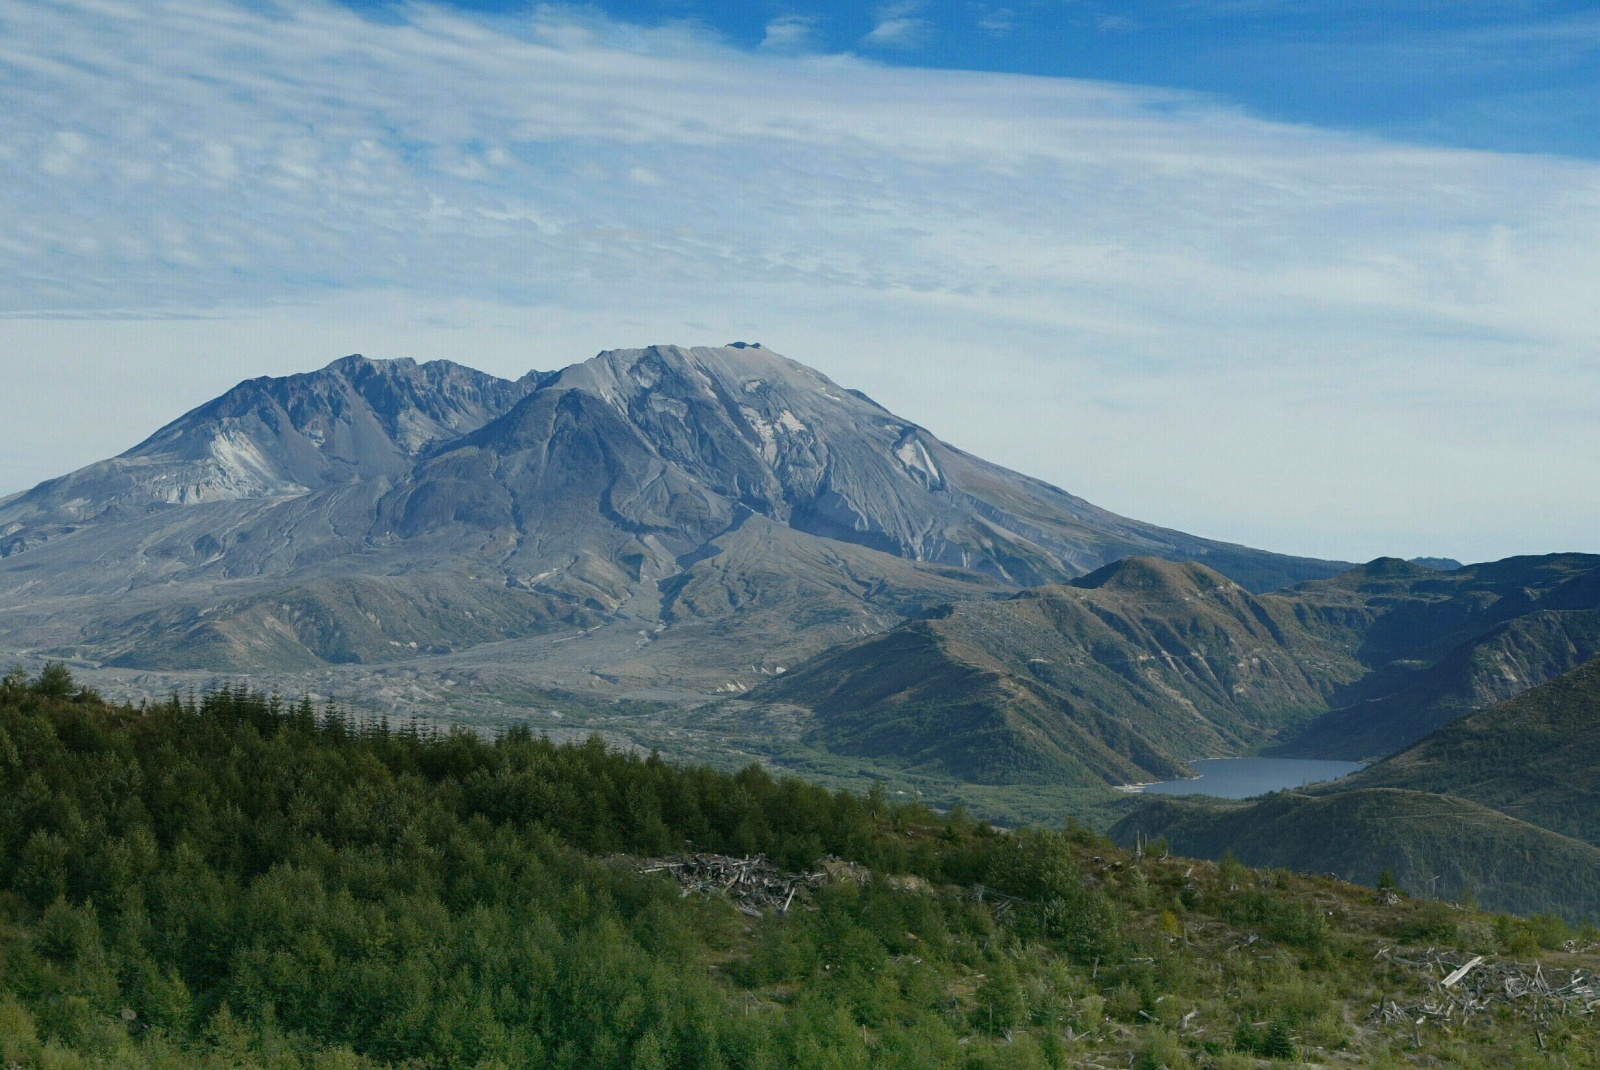 Mt. St. Helens and Lake view